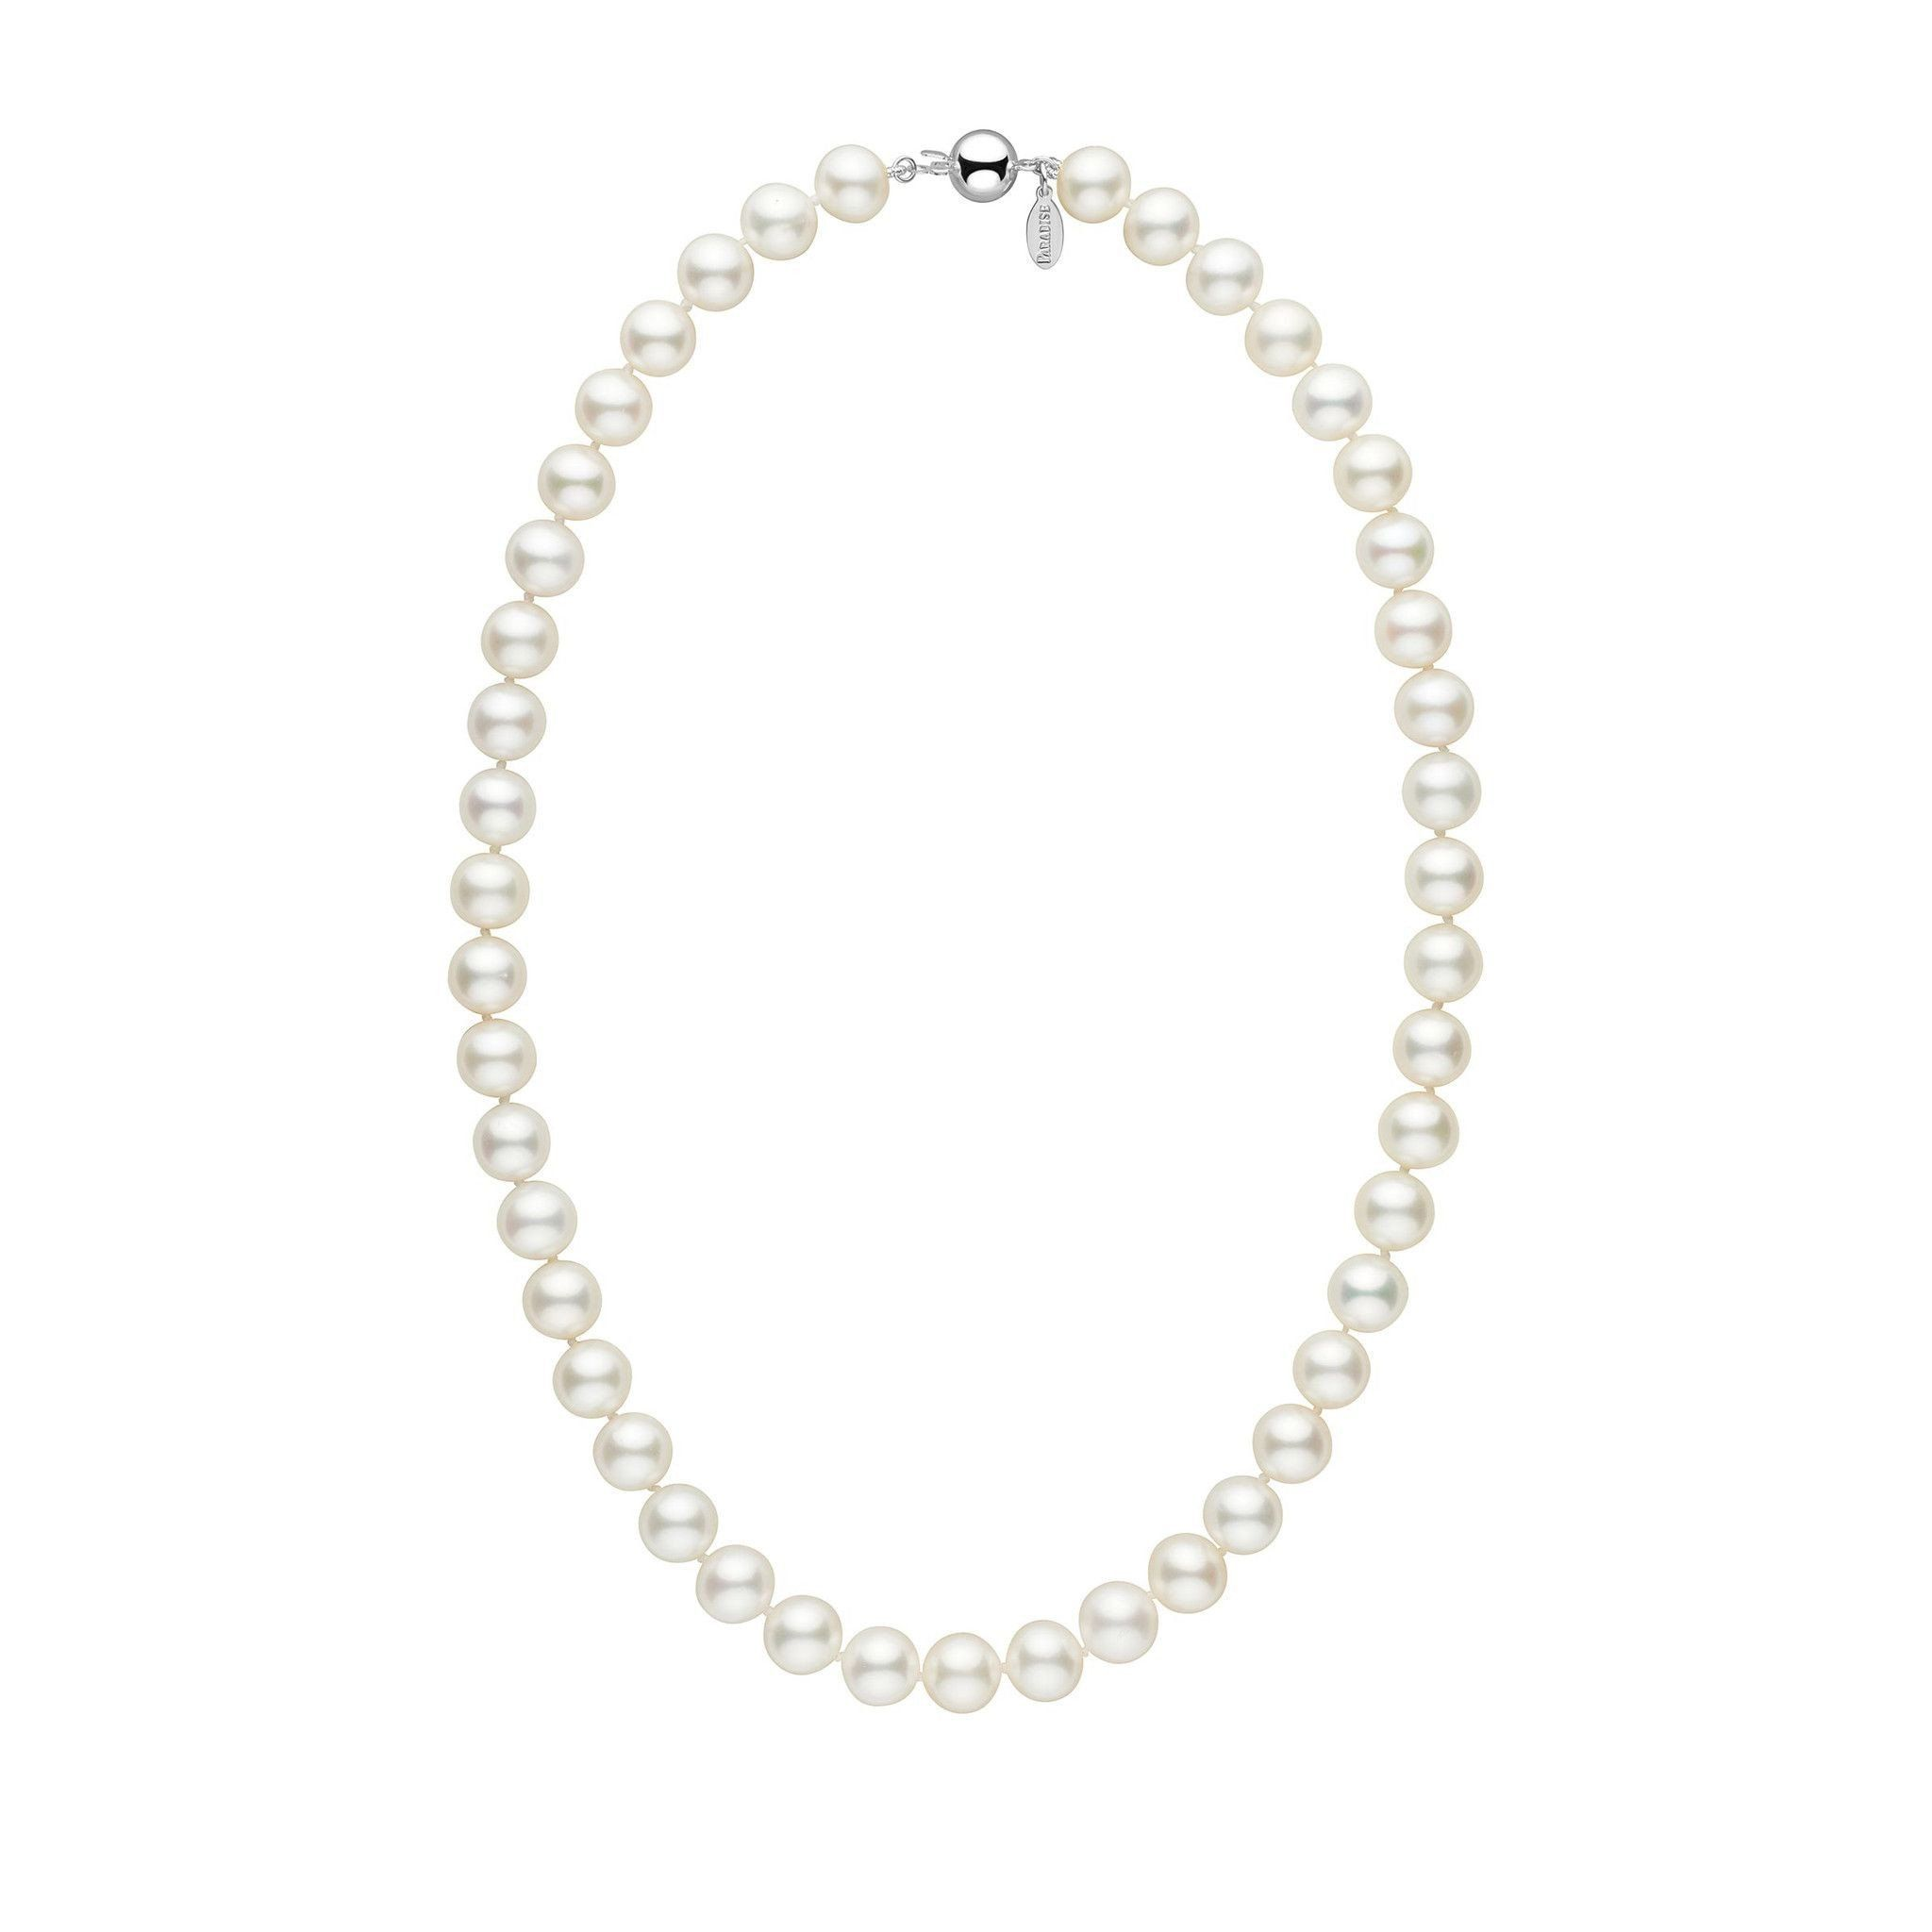 10.0-10.5 mm 18 Inch White Freshadama Freshwater Pearl Necklace